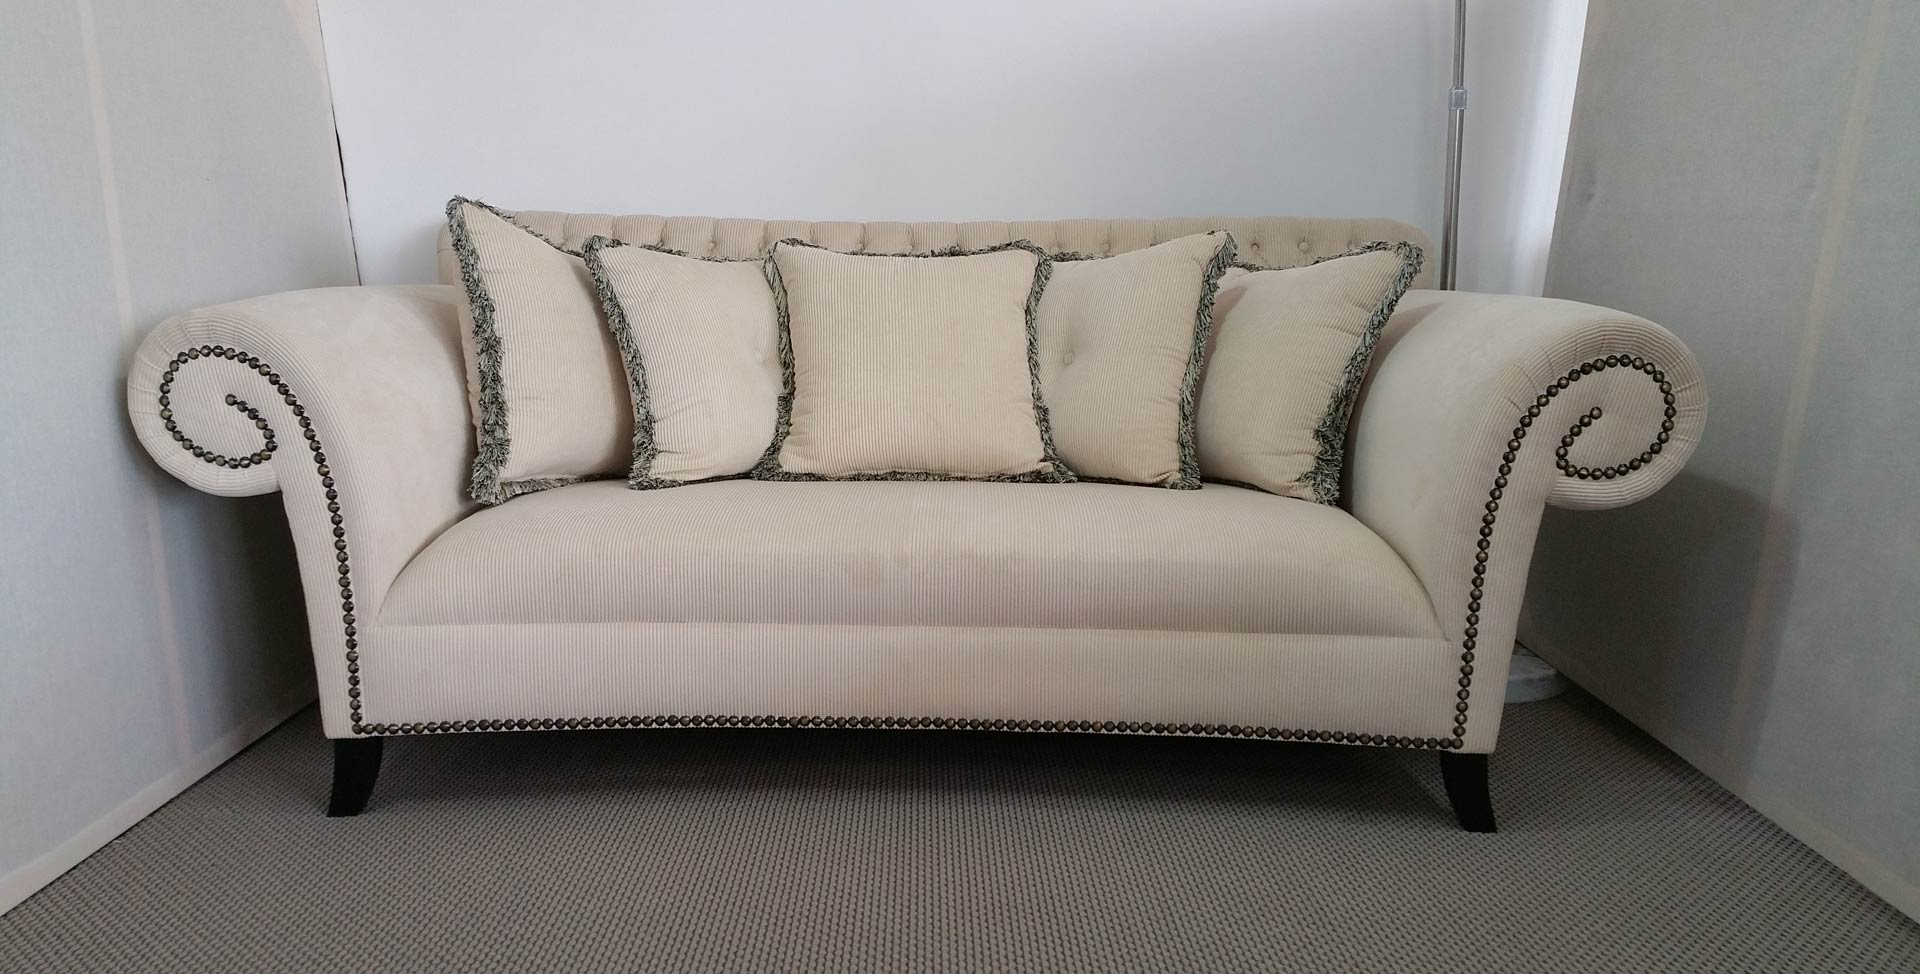 Euro Sofa Direct Pty Ltd